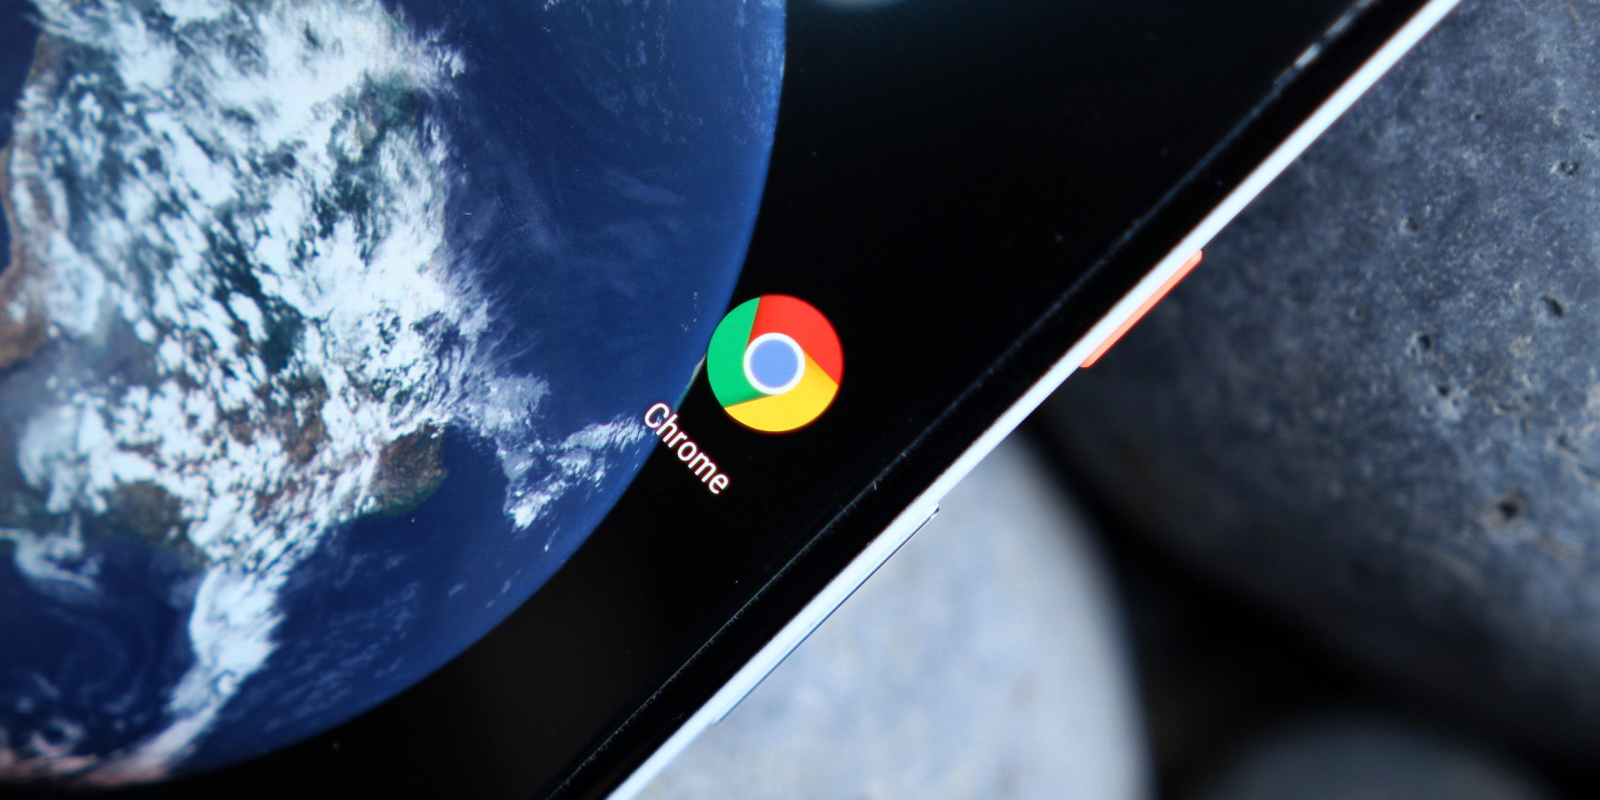 Google wants to make it harder for sites to detect that you're using Chrome's Incognito Mode